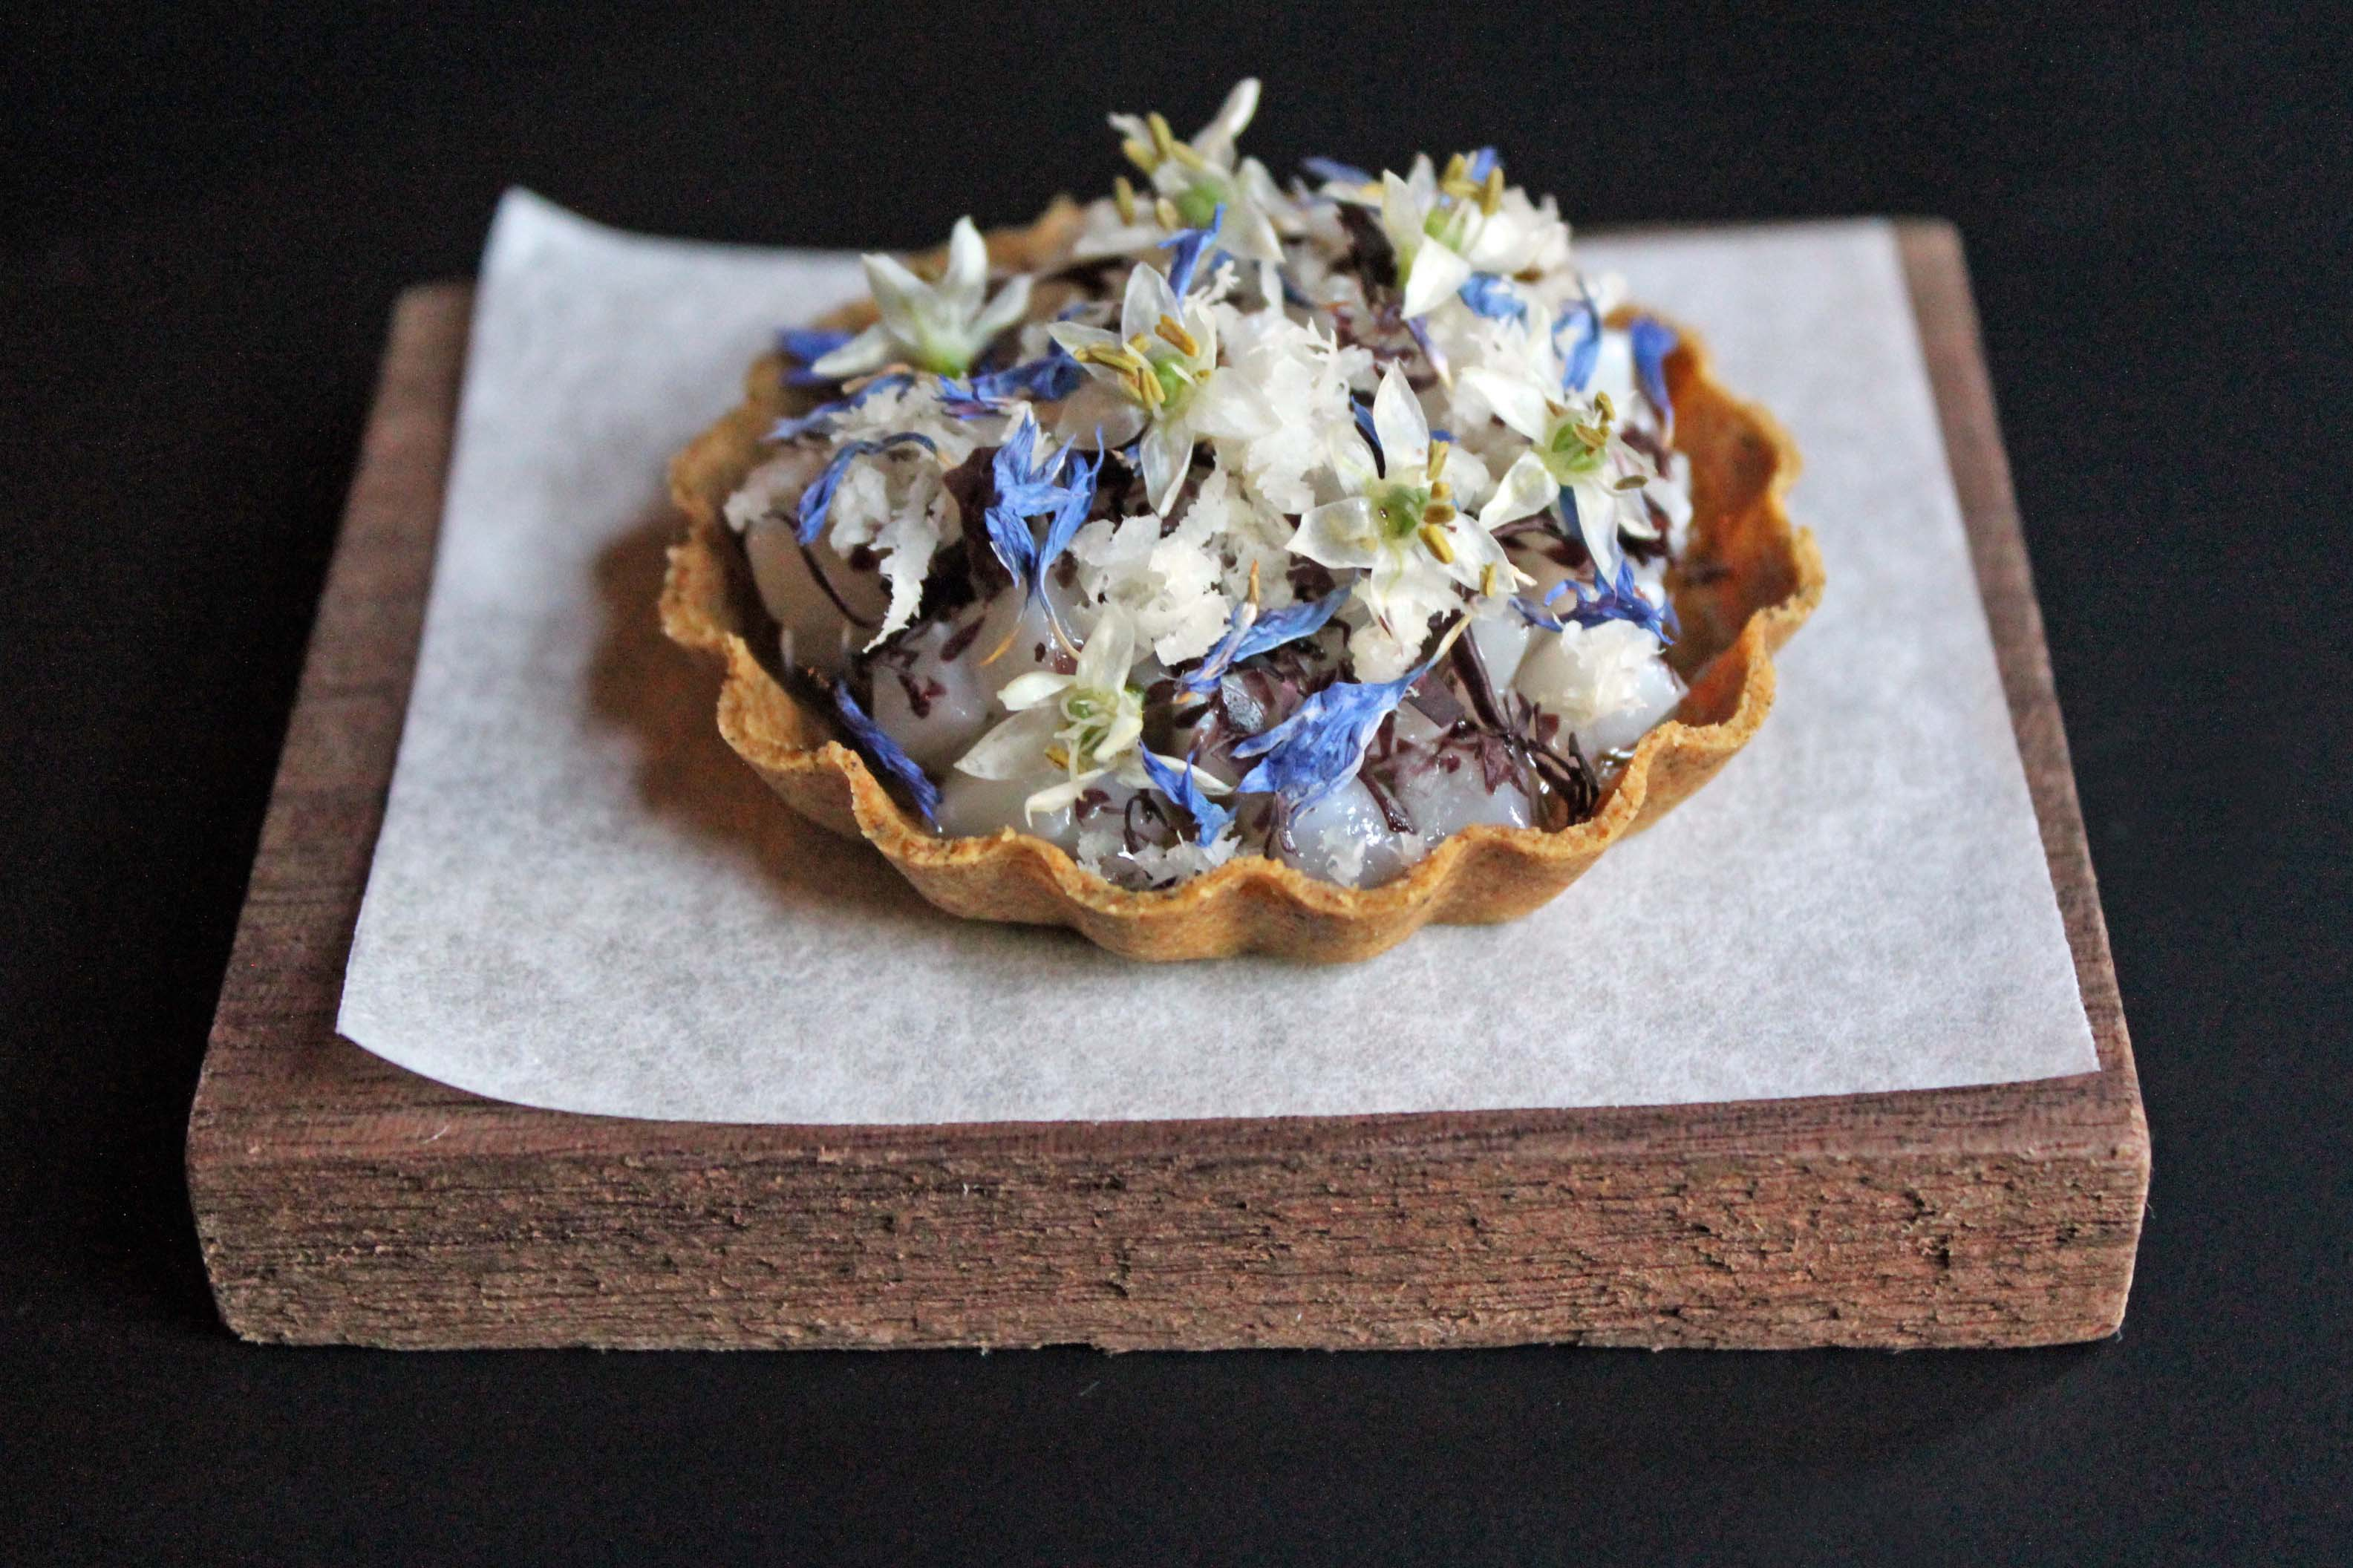 Seaweed and charred squid tart, with edible flowers